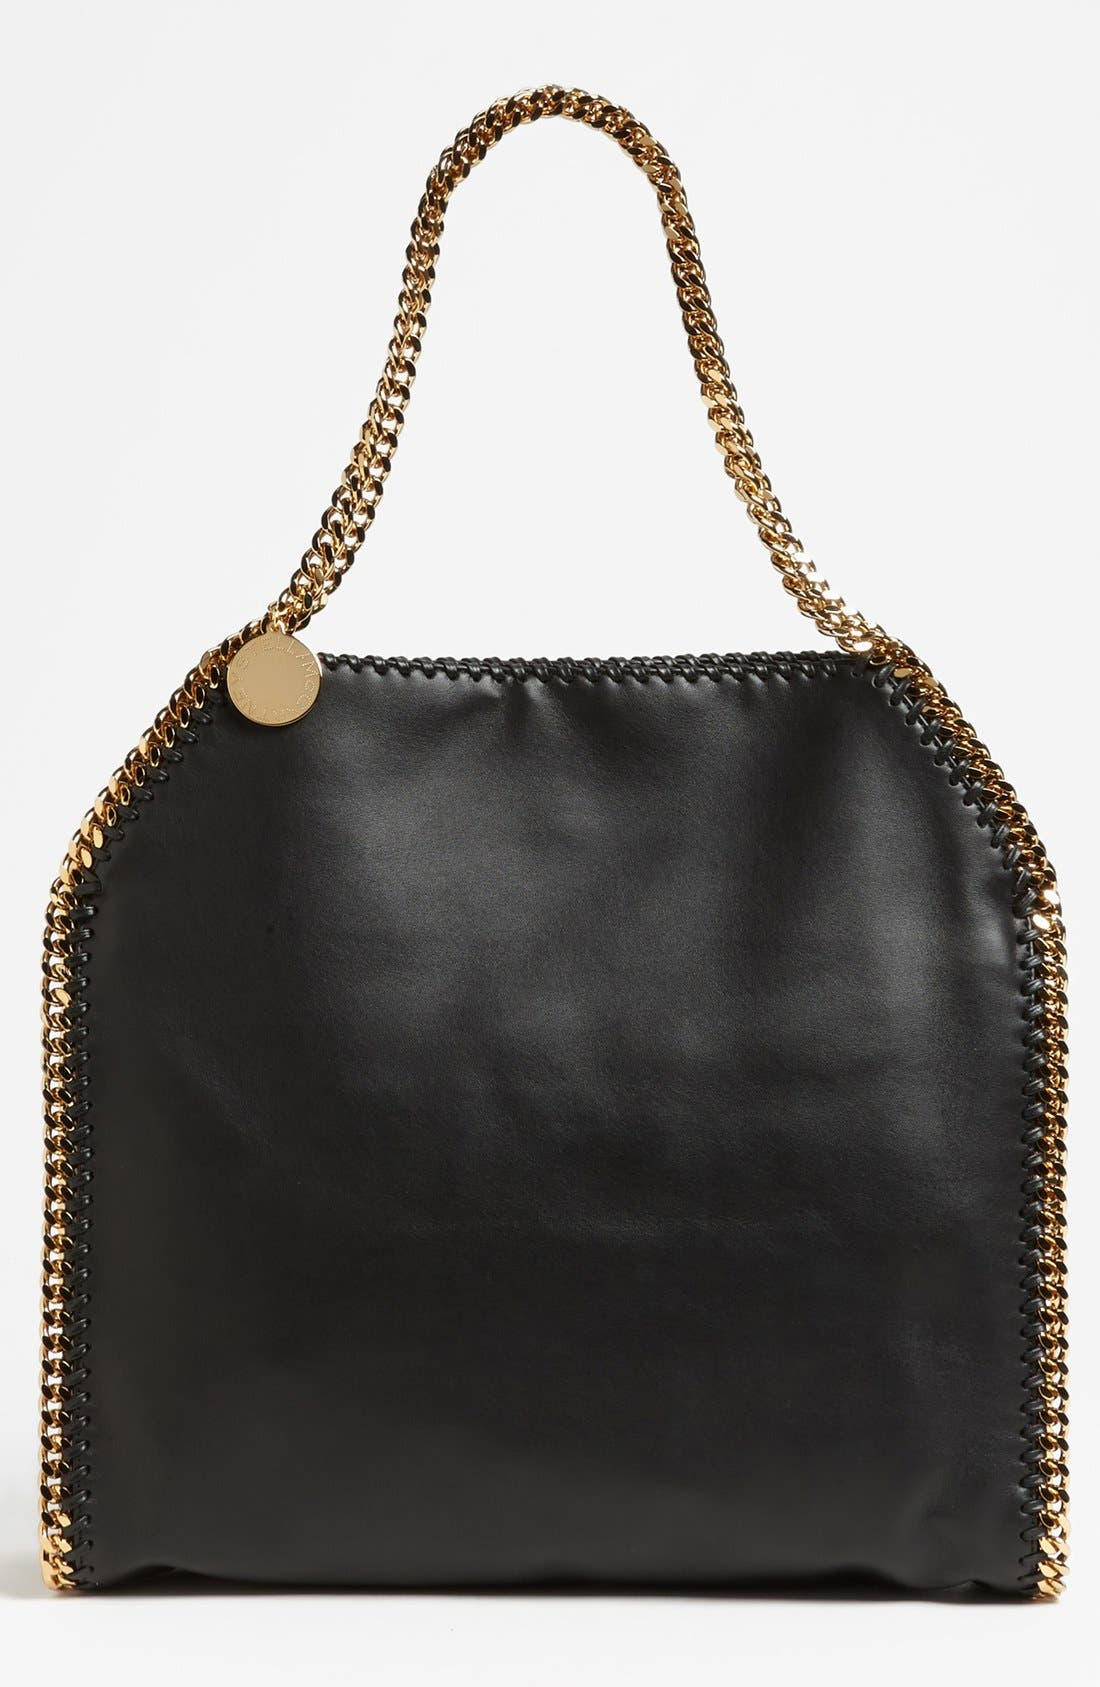 Alternate Image 1 Selected - Stella McCartney 'Small Falabella' Faux Leather Tote